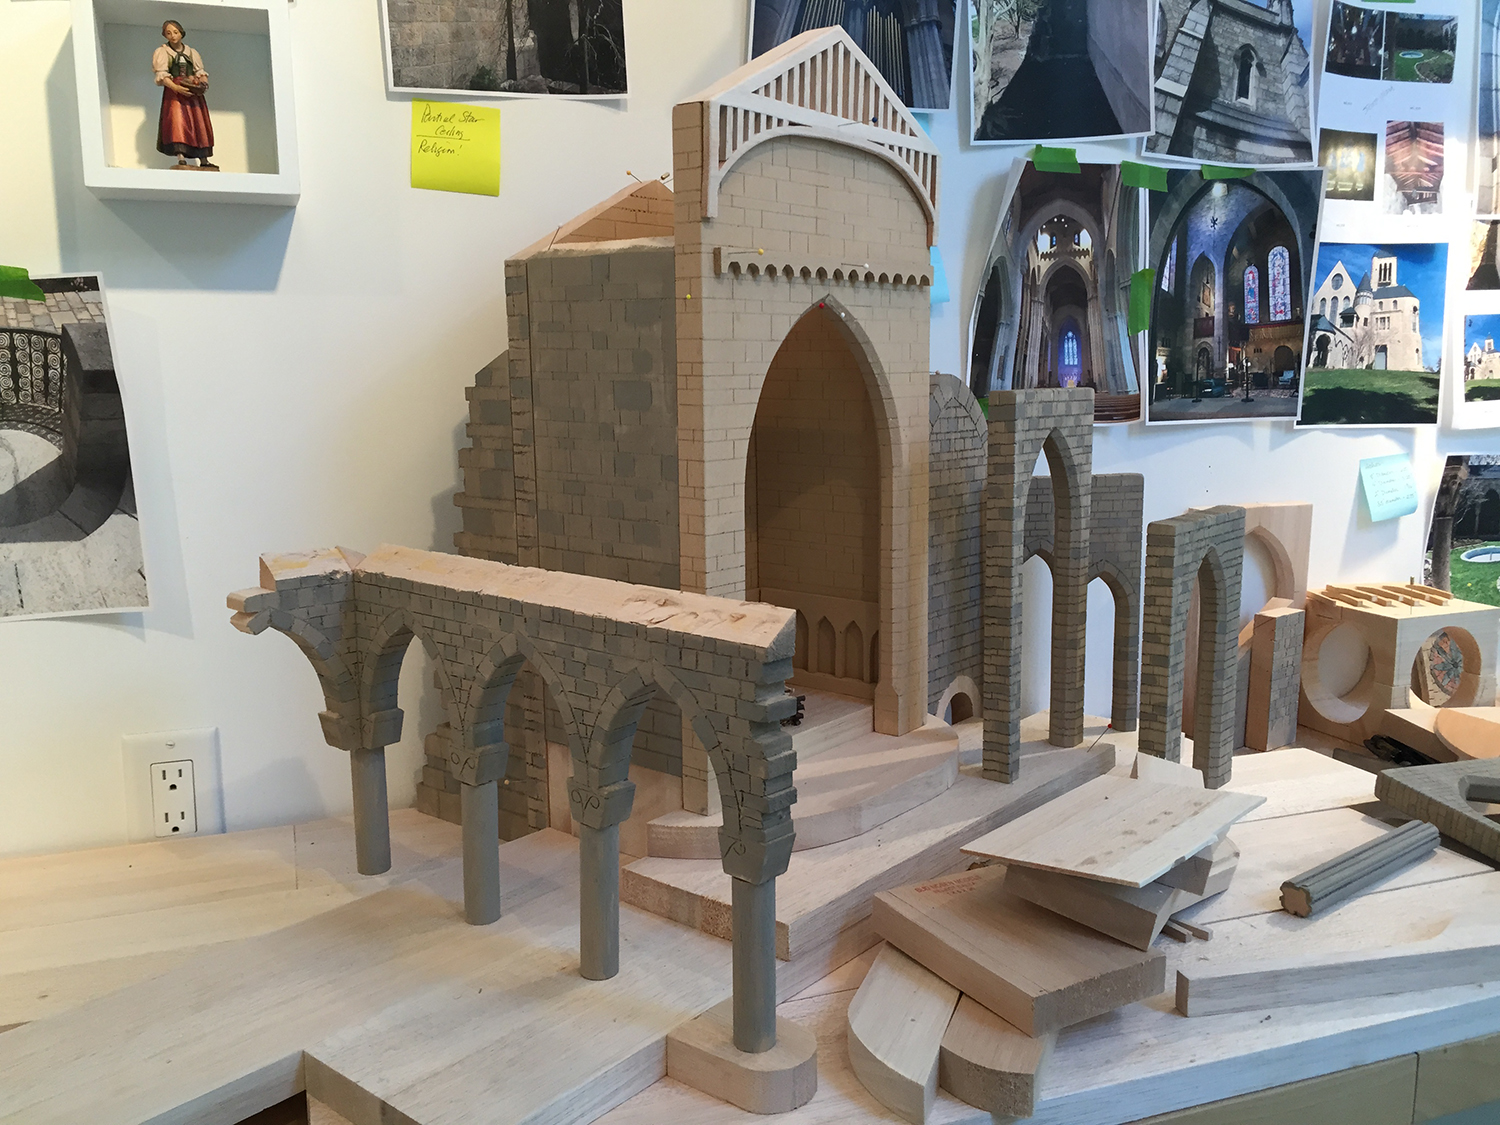 Figure 4:  The Glencairn Nativity  under construction. Columns and capitals from Glencairn's Cloister can be seen on the left.